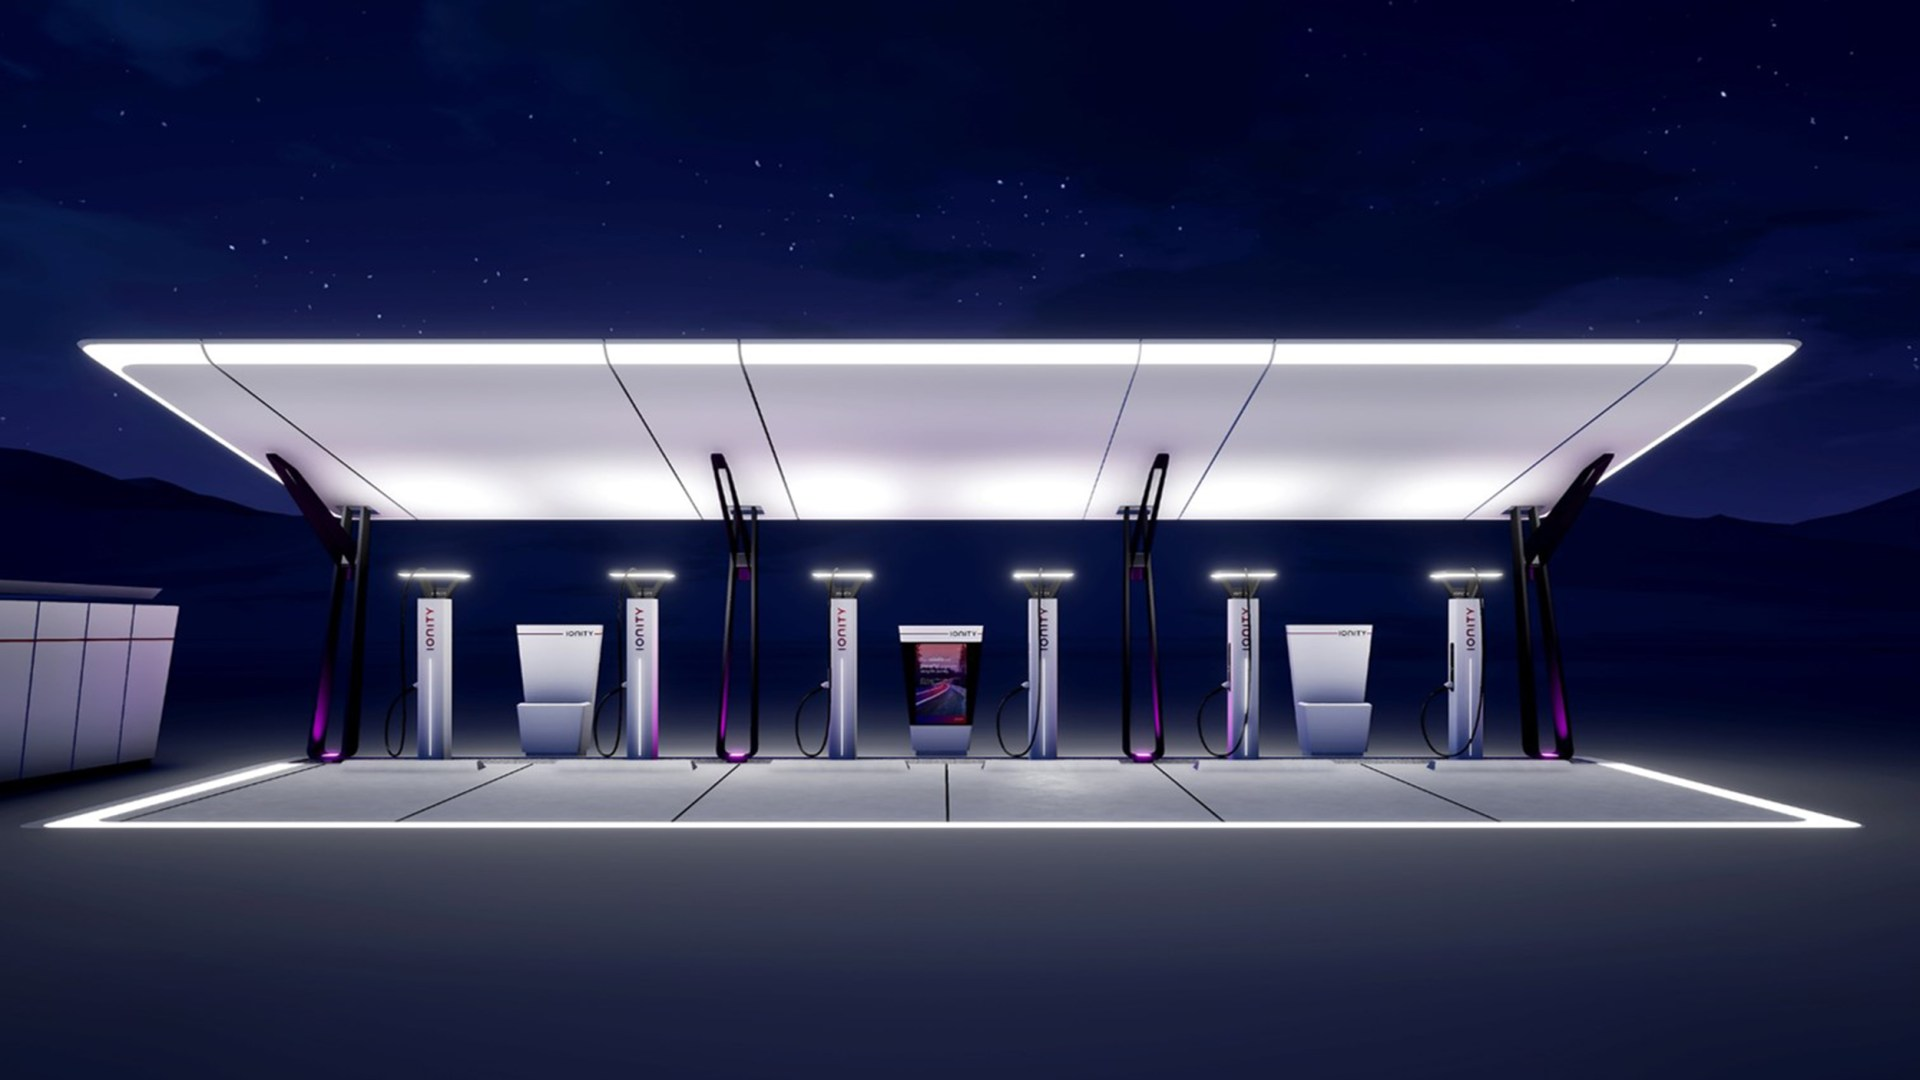 ionity charging station by night